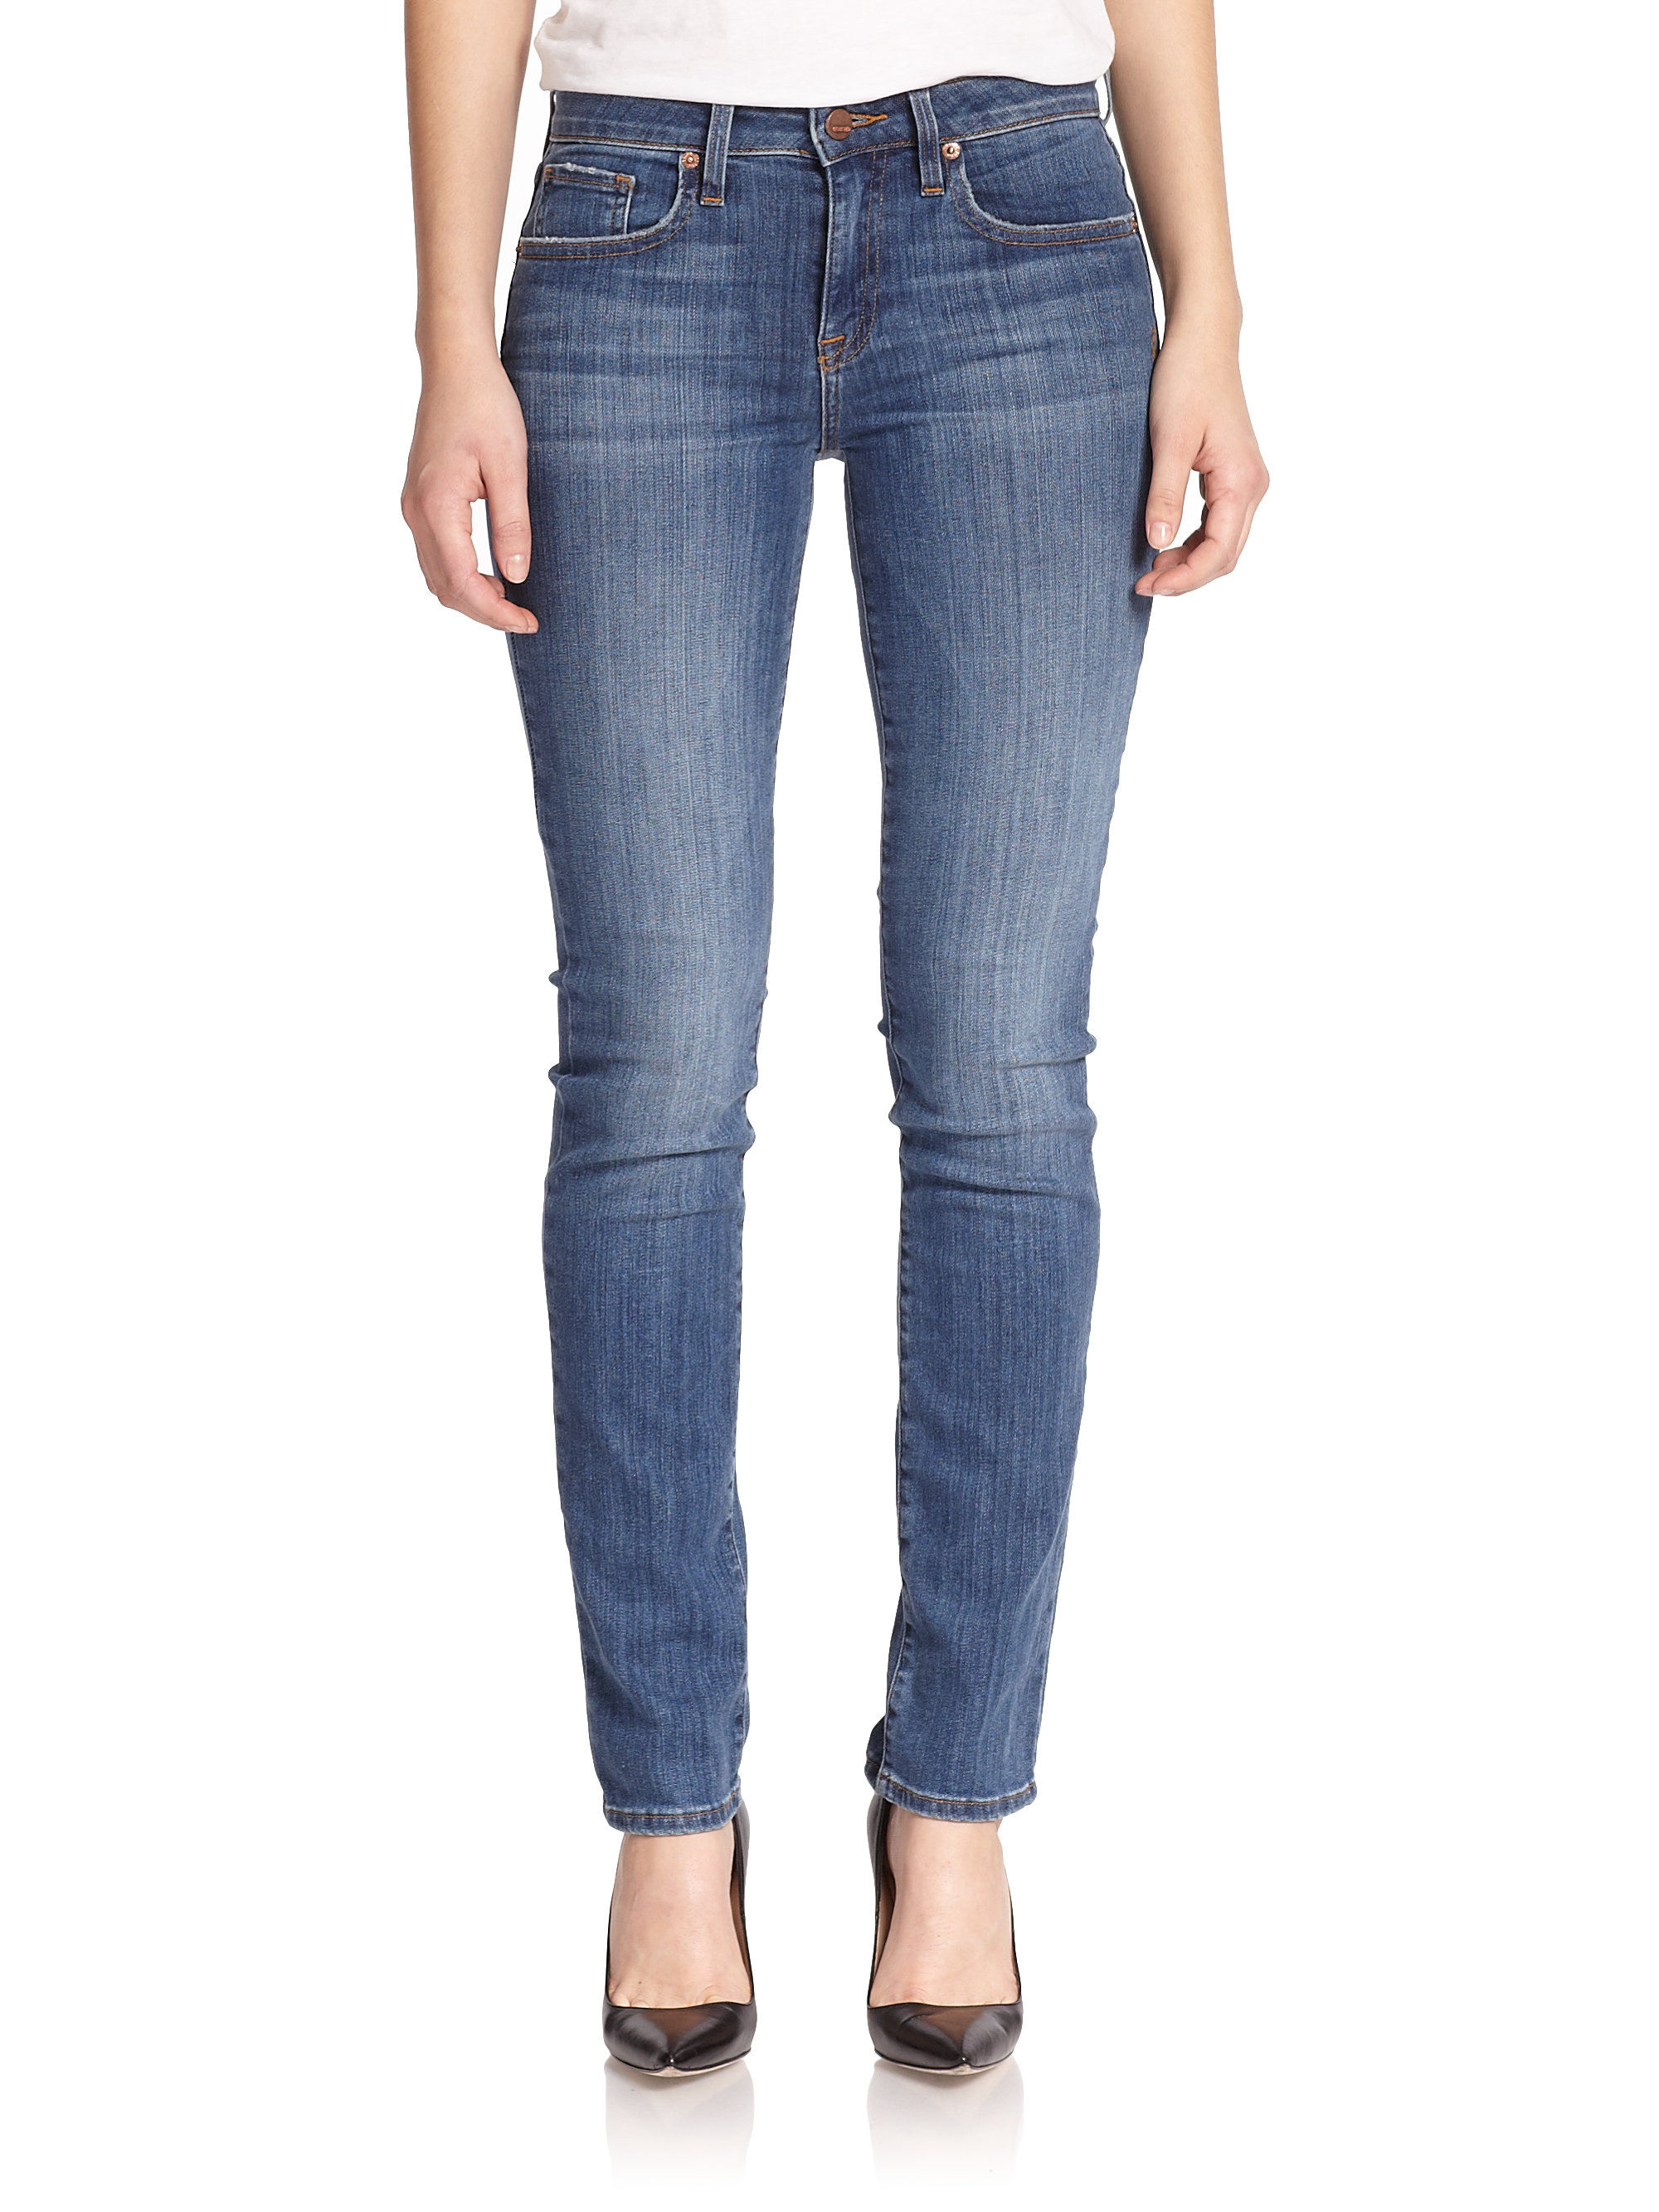 Genetic denim Matchstick Skinny-Straight Jeans in Blue | Lyst